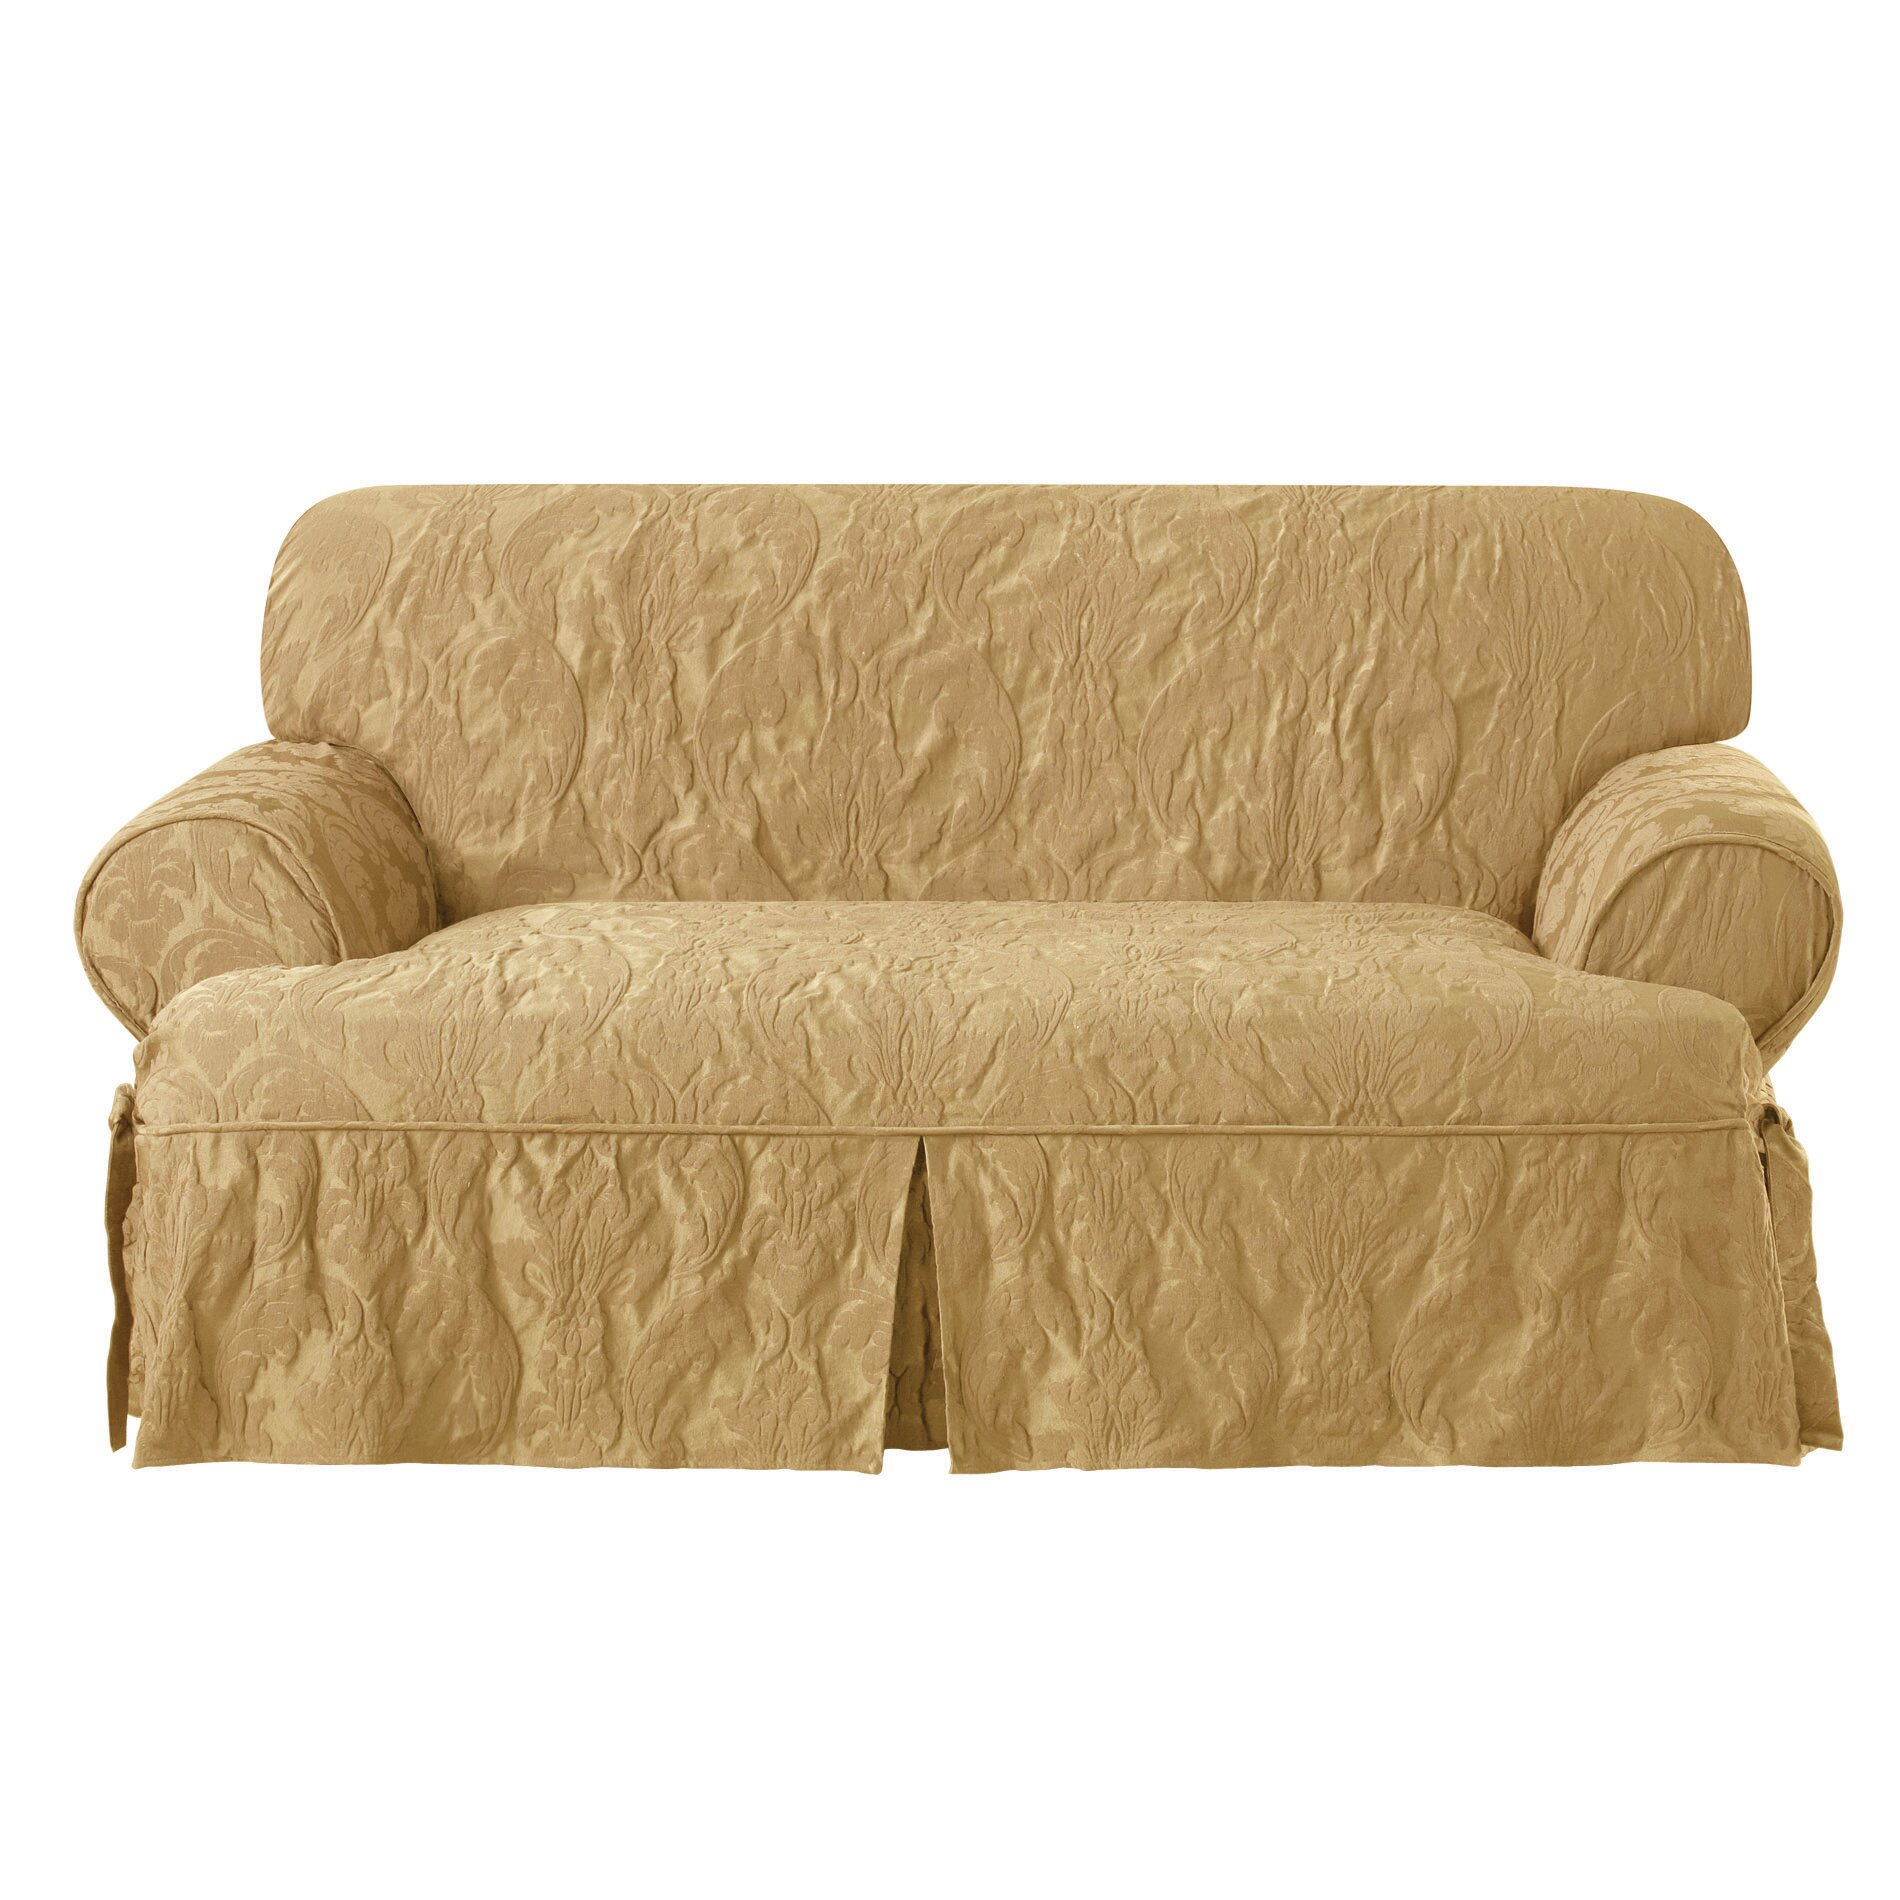 Sure Fit T Cushion Loveseat Slipcovers Sure Fit Matelasse Damask Loveseat T Cushion Slipcover